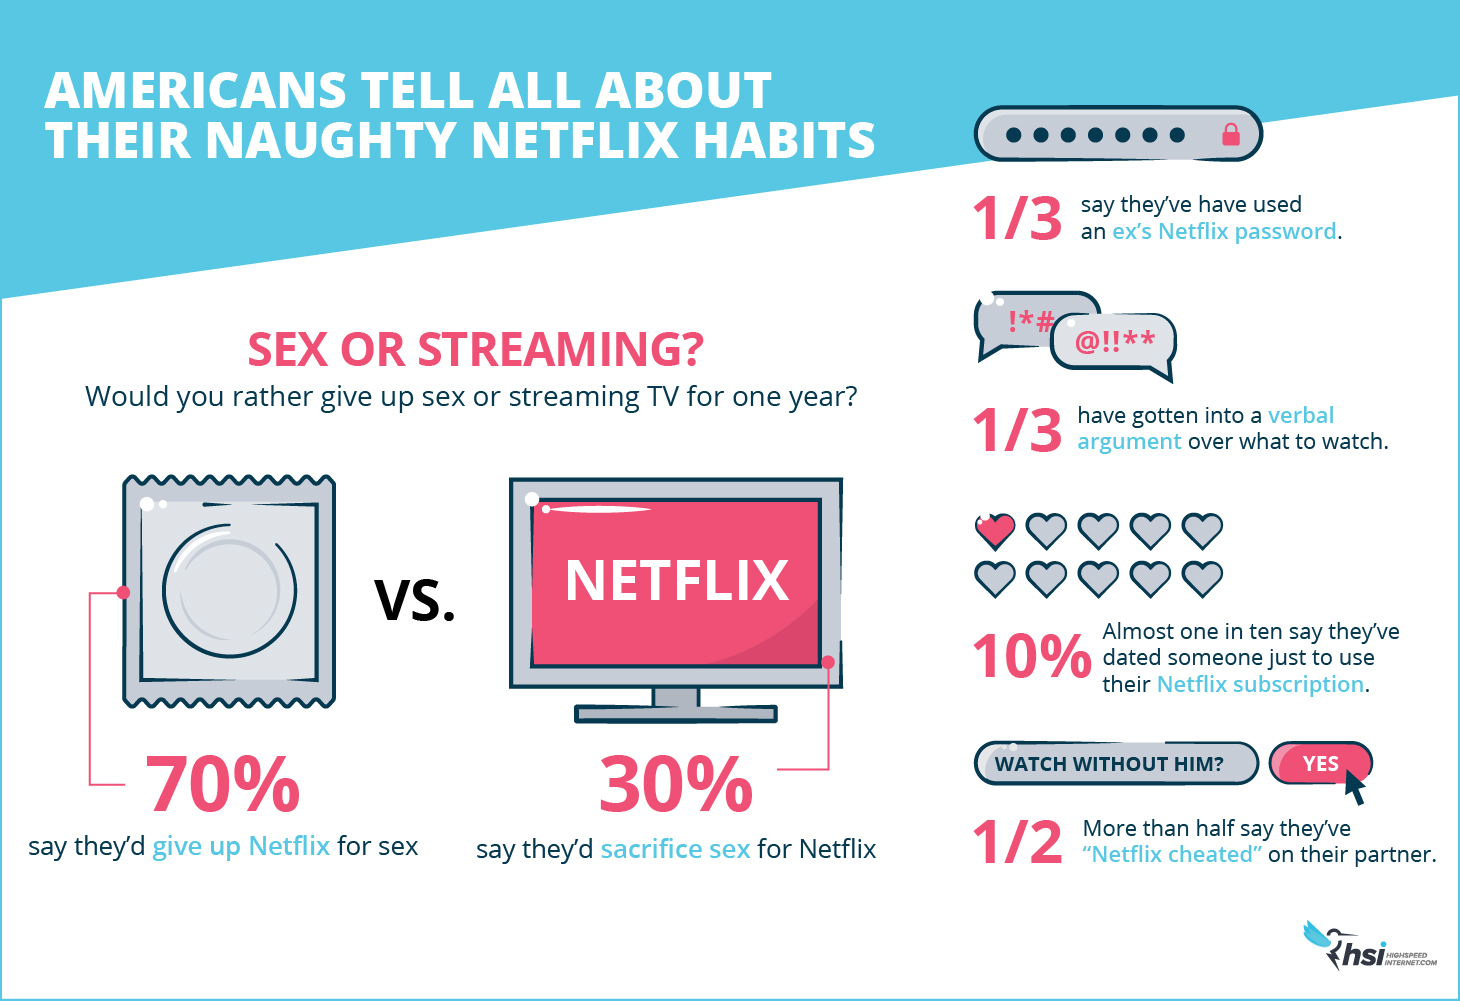 Naughty Netflix Habits in the US